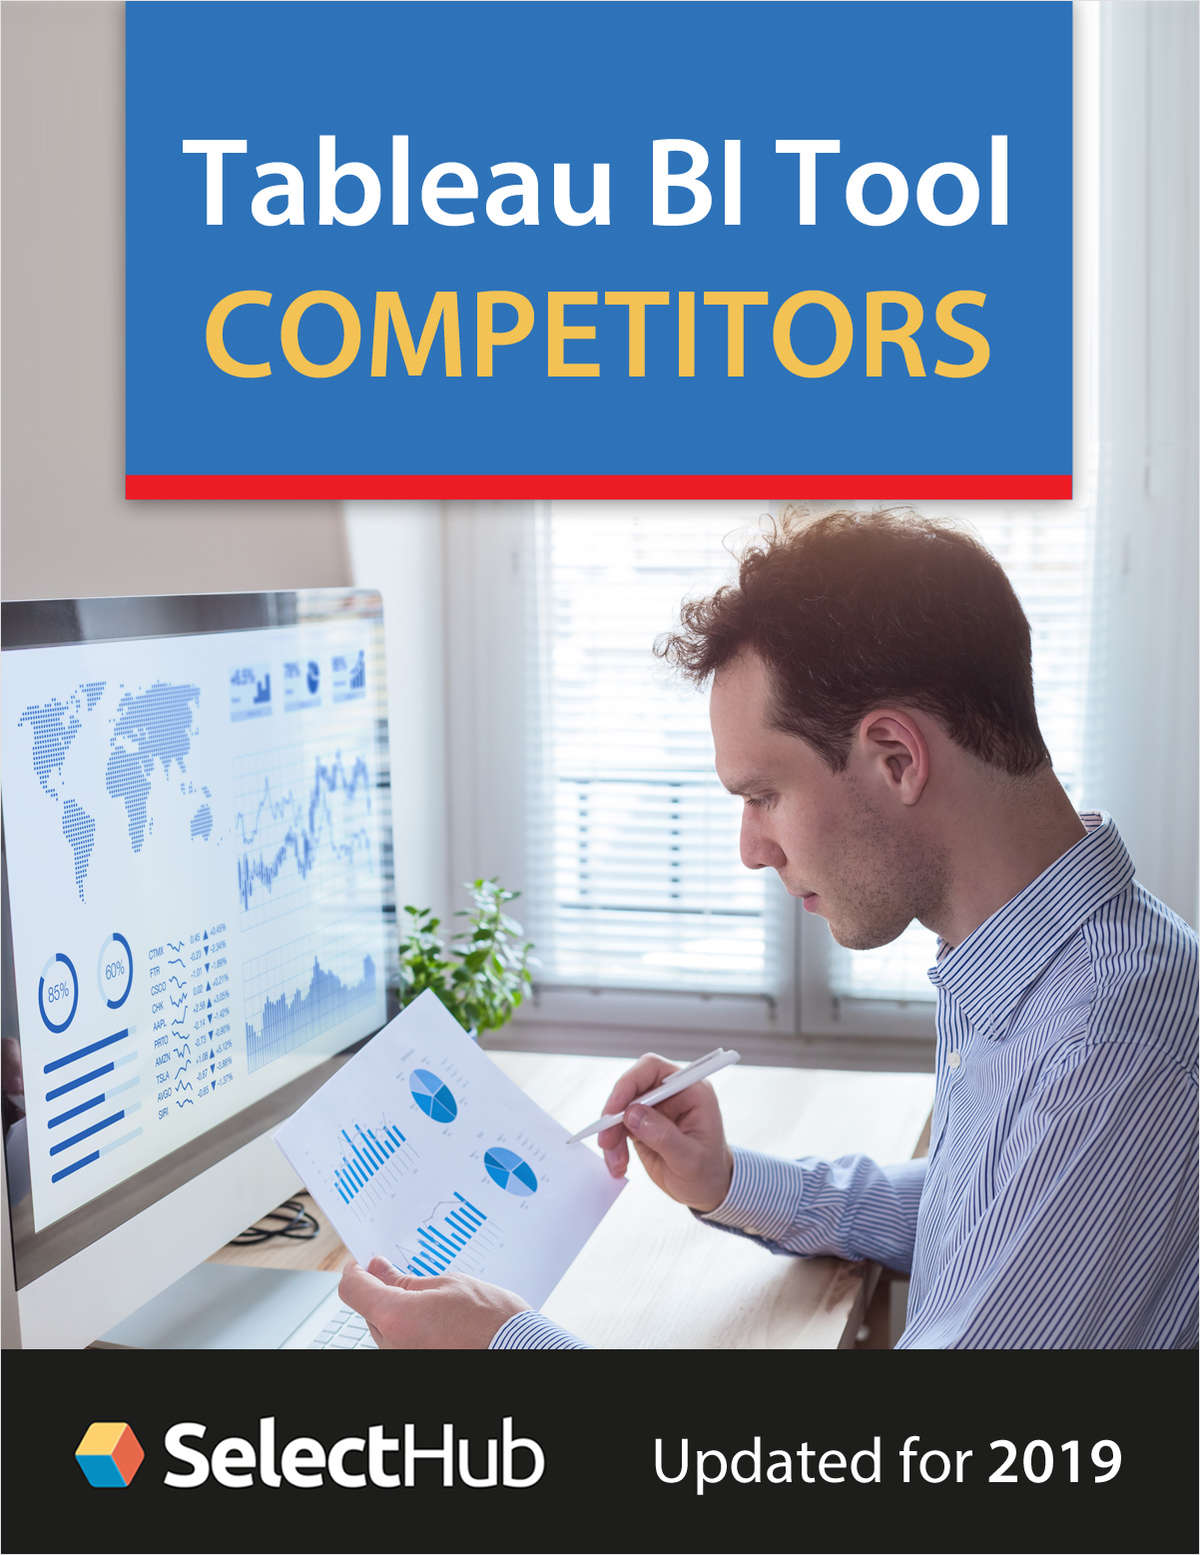 Tableau BI Tool Competitors for 2019, Free SelectHub Report